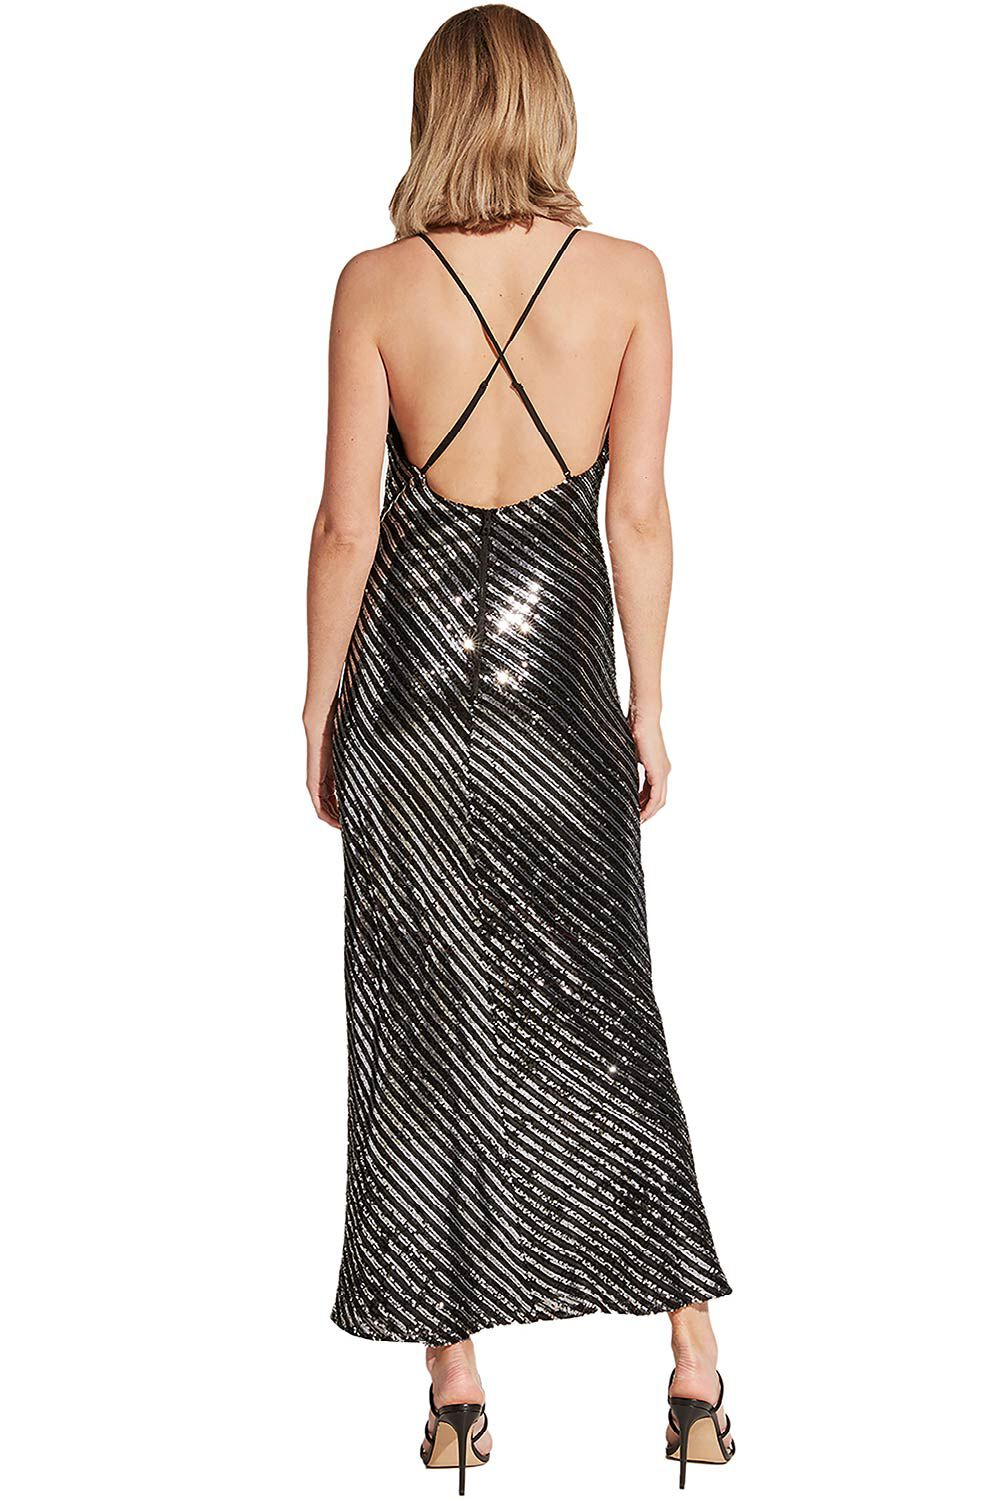 STRIPE SEQUIN SLIP in colour METEORITE